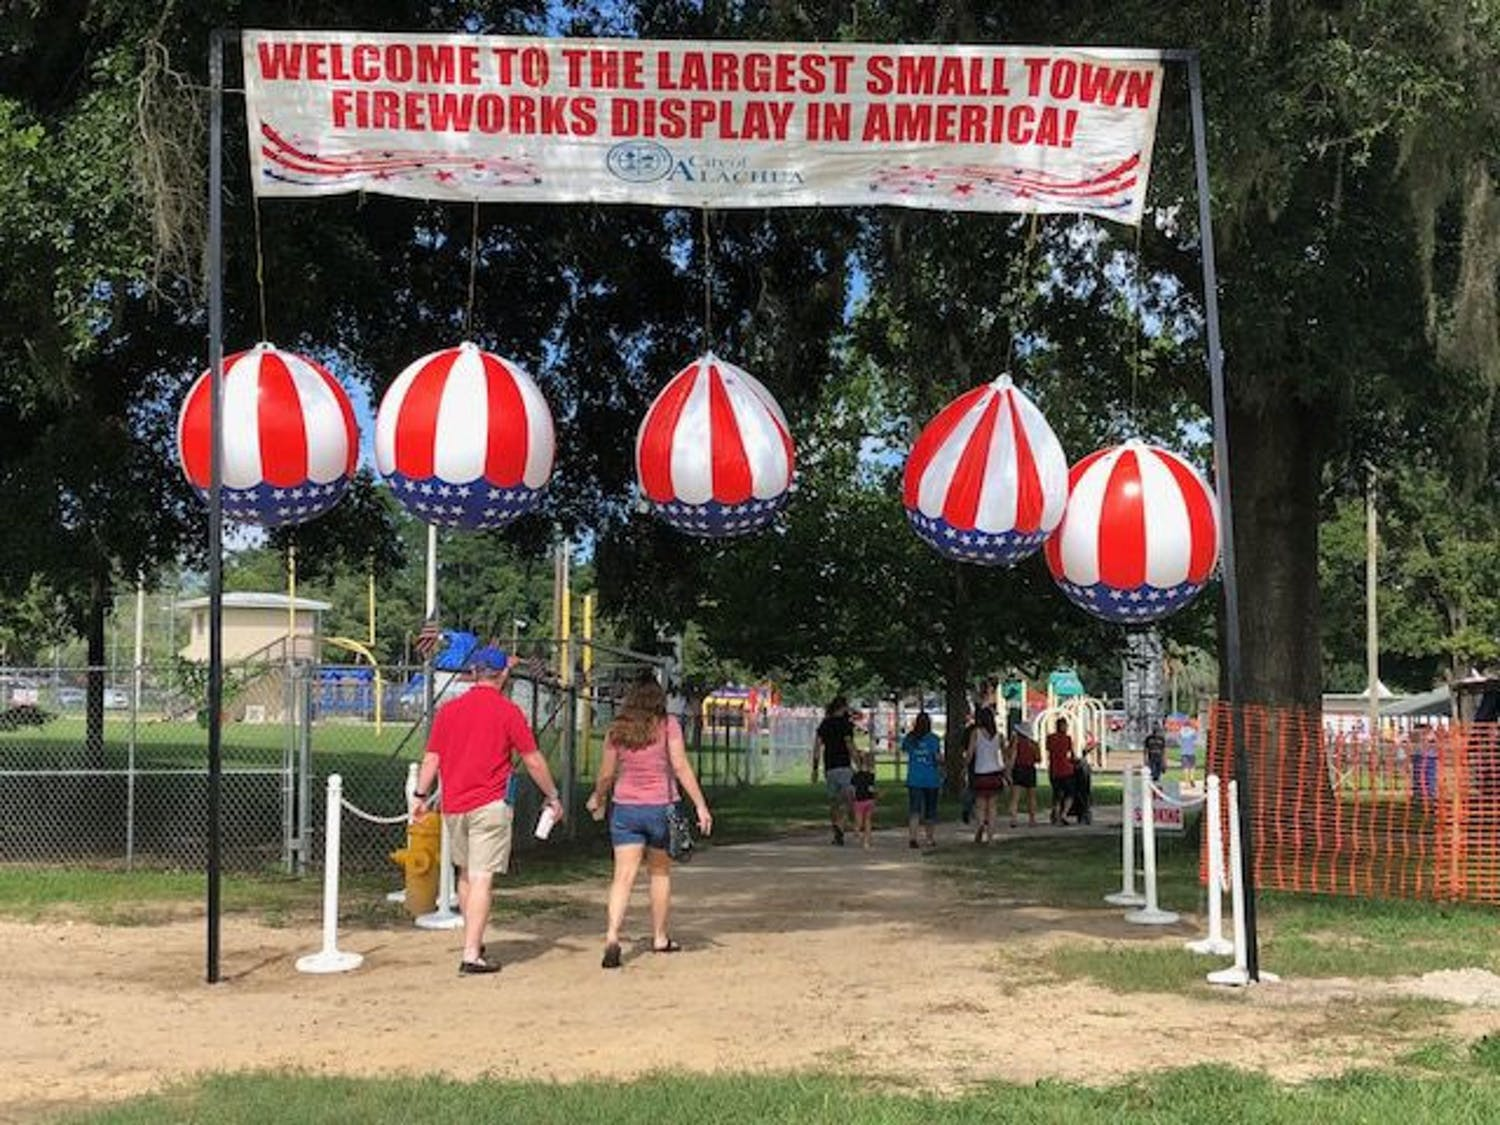 People file in through the main entrance to attend the festival.